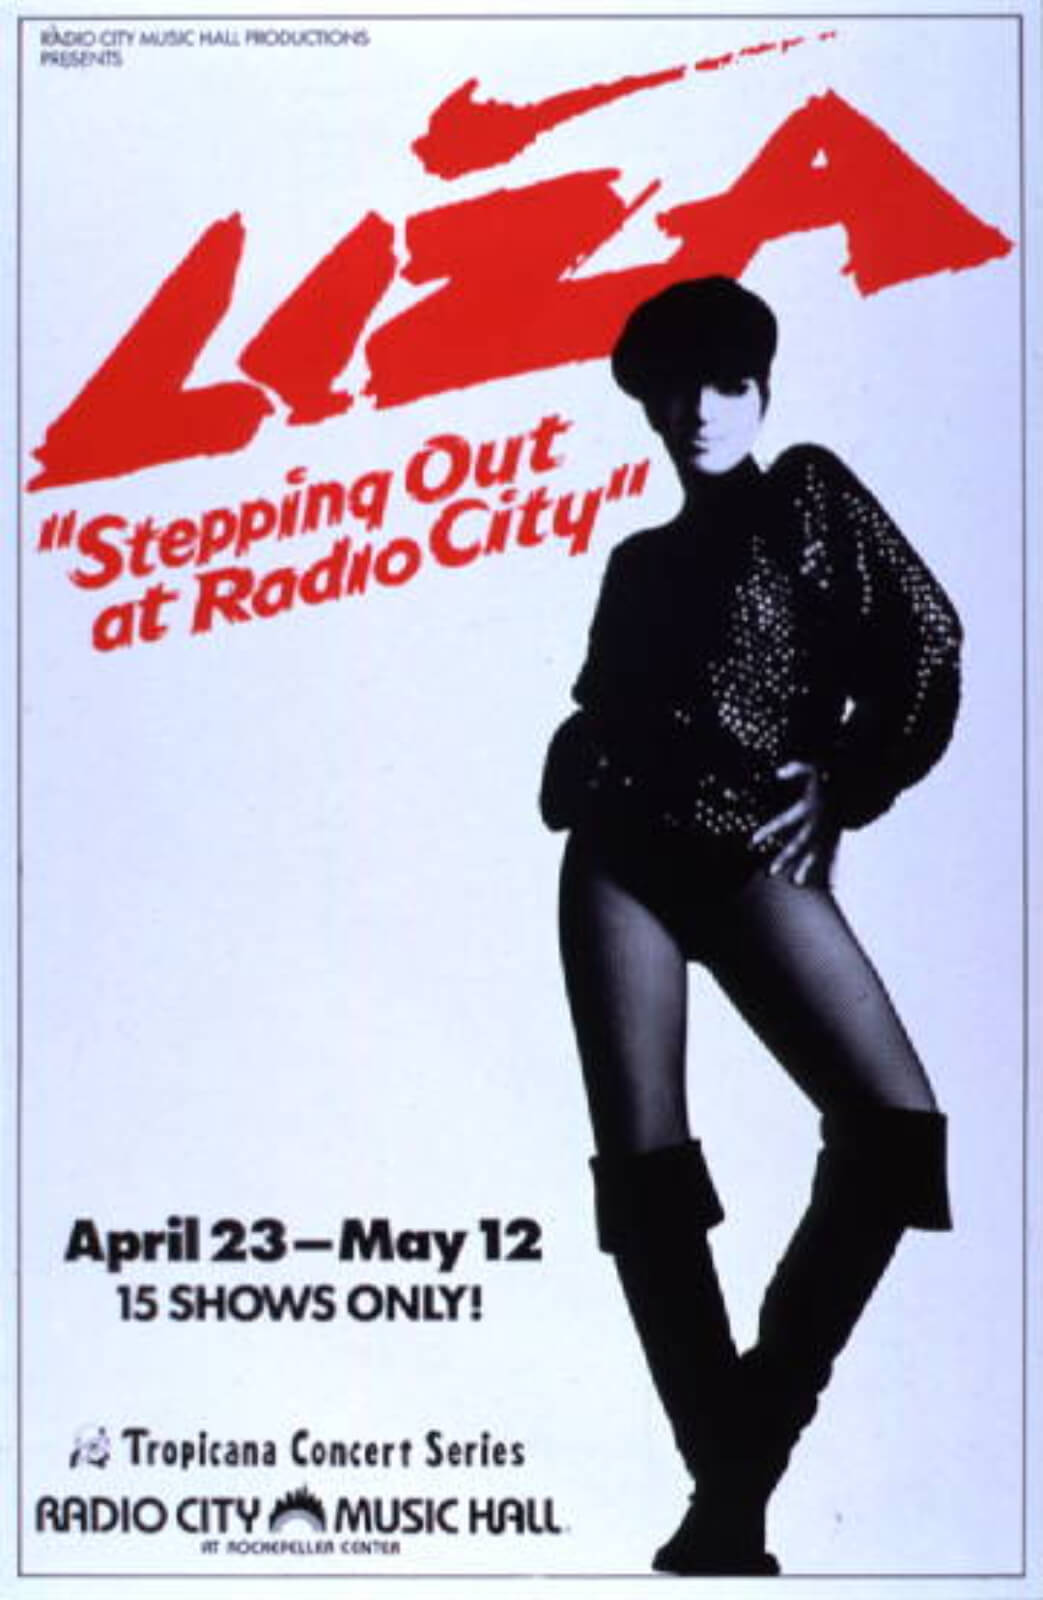 Liza poster for the run at Radio City Music Hall. Liza, in a hat, and thigh high boots, sports a fosse pose with her name in red letters behind her.